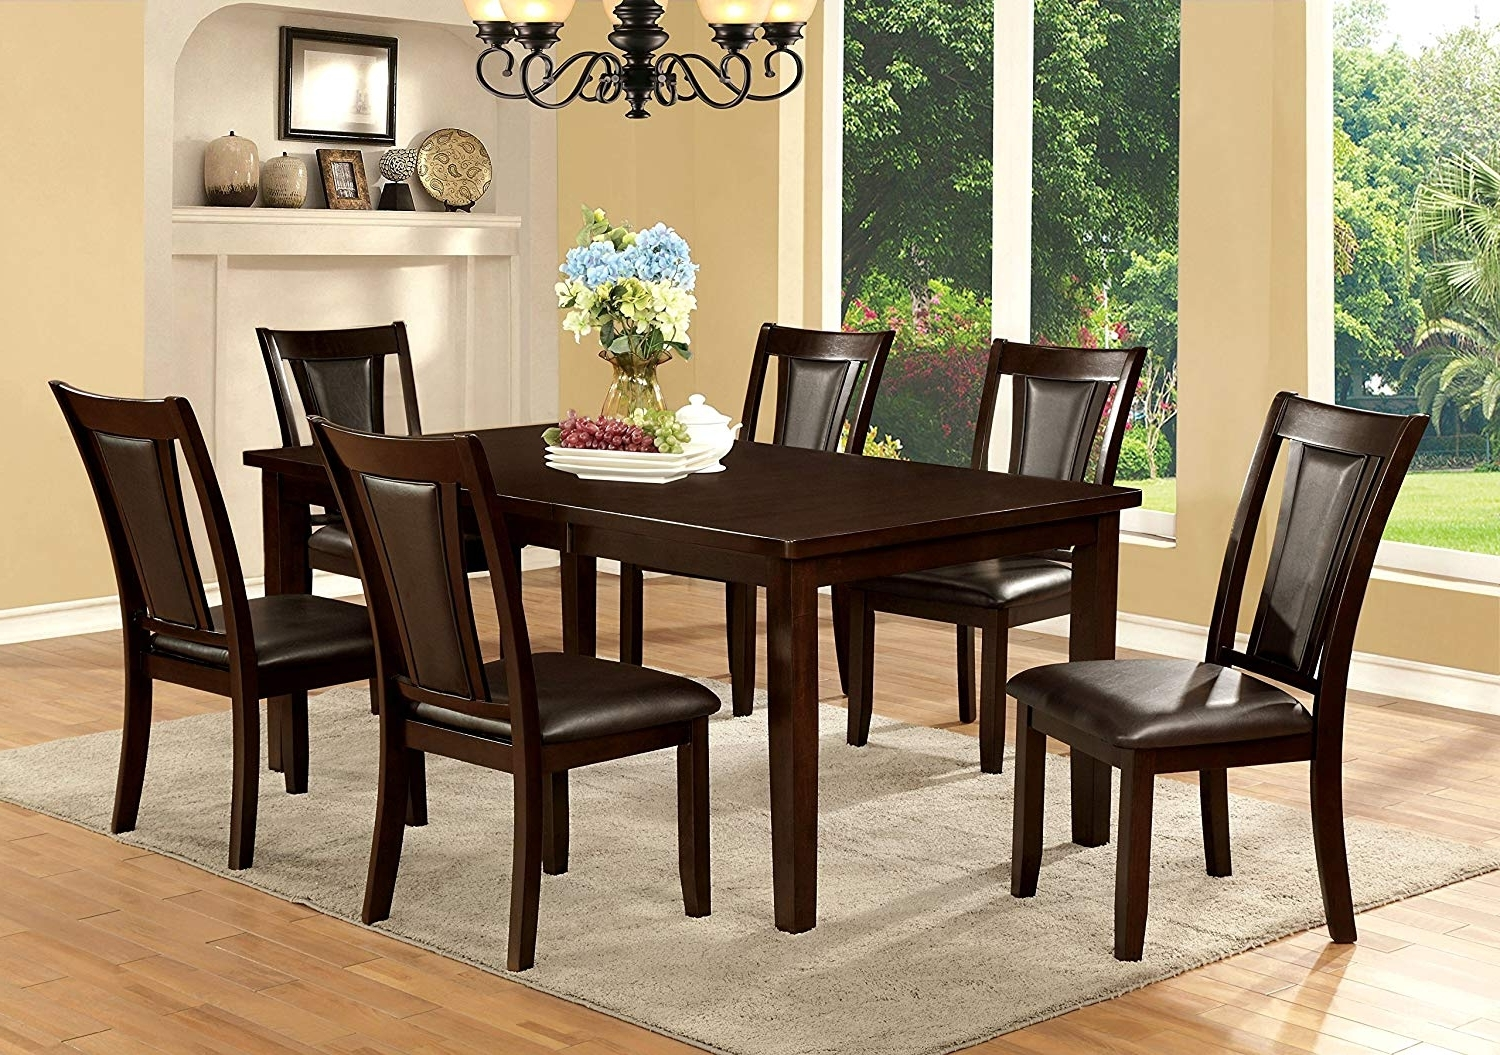 Most Recent Crawford 7 Piece Rectangle Dining Sets In Amazon – Furniture Of America Simone 7 Piece Contemporary Dining (View 5 of 25)